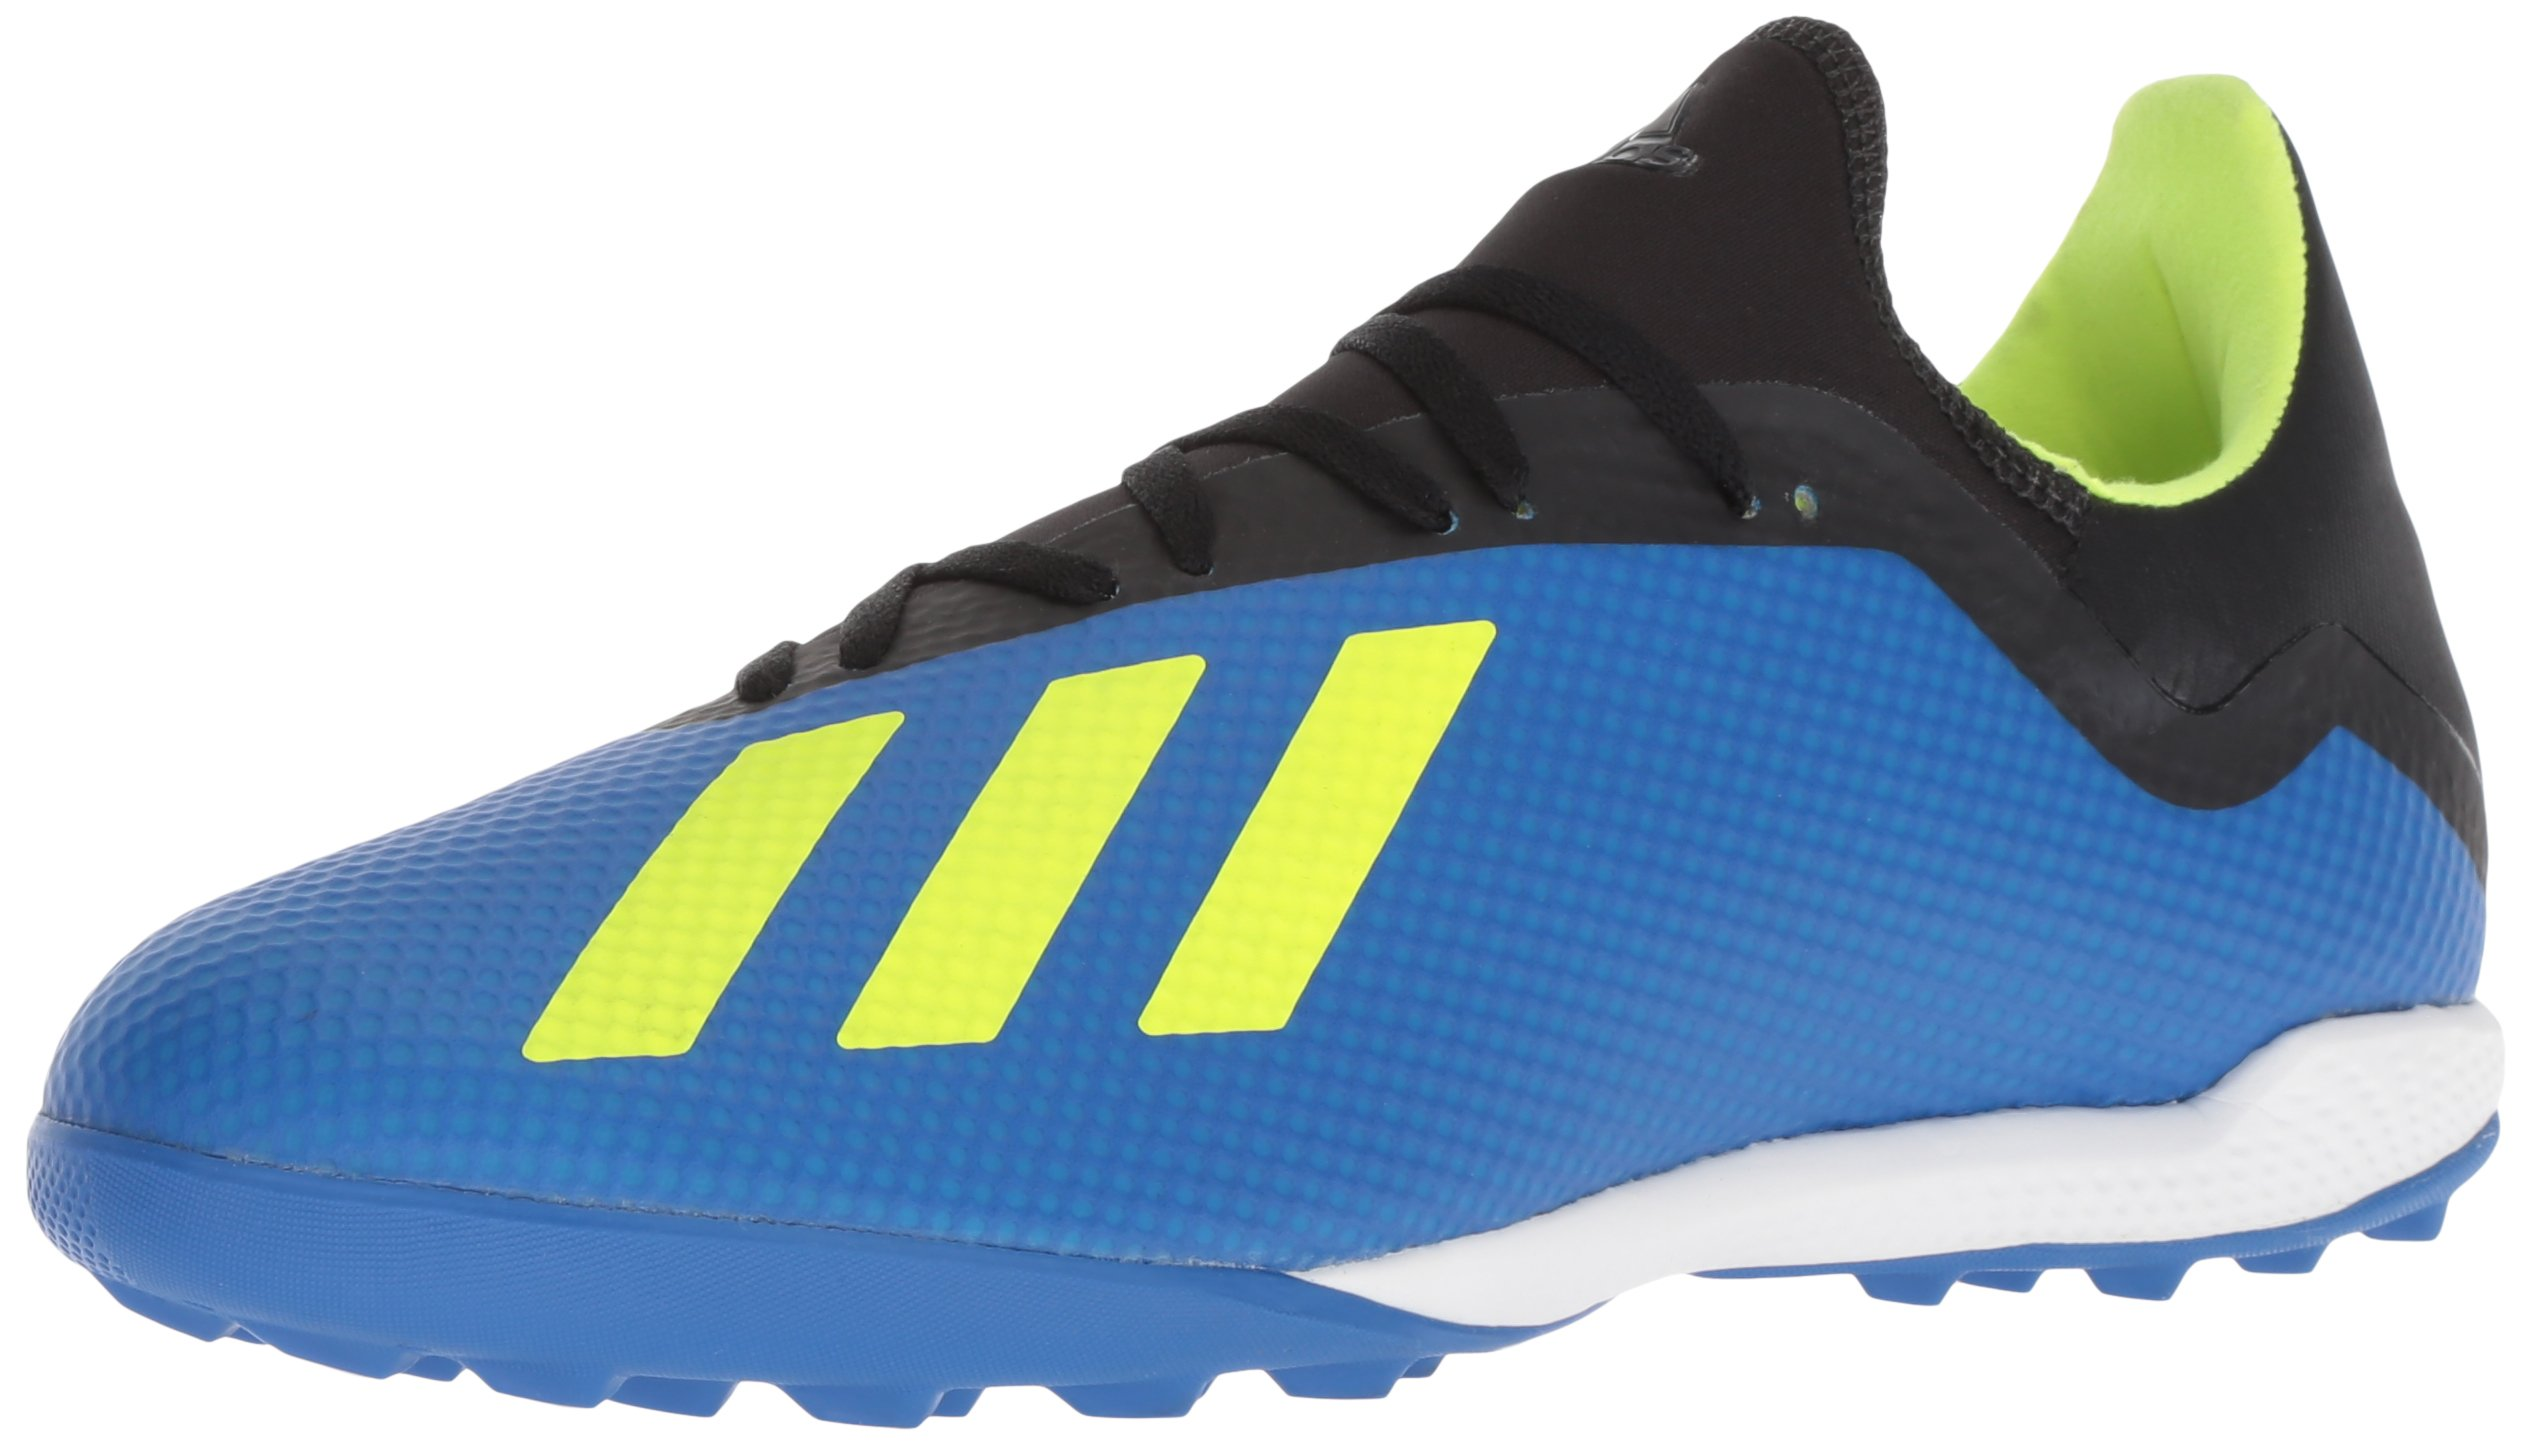 adidas Men's X Tango 18.3 Turf Soccer Shoe, Football Blue/Solar Yellow/Black, 9.5 M US